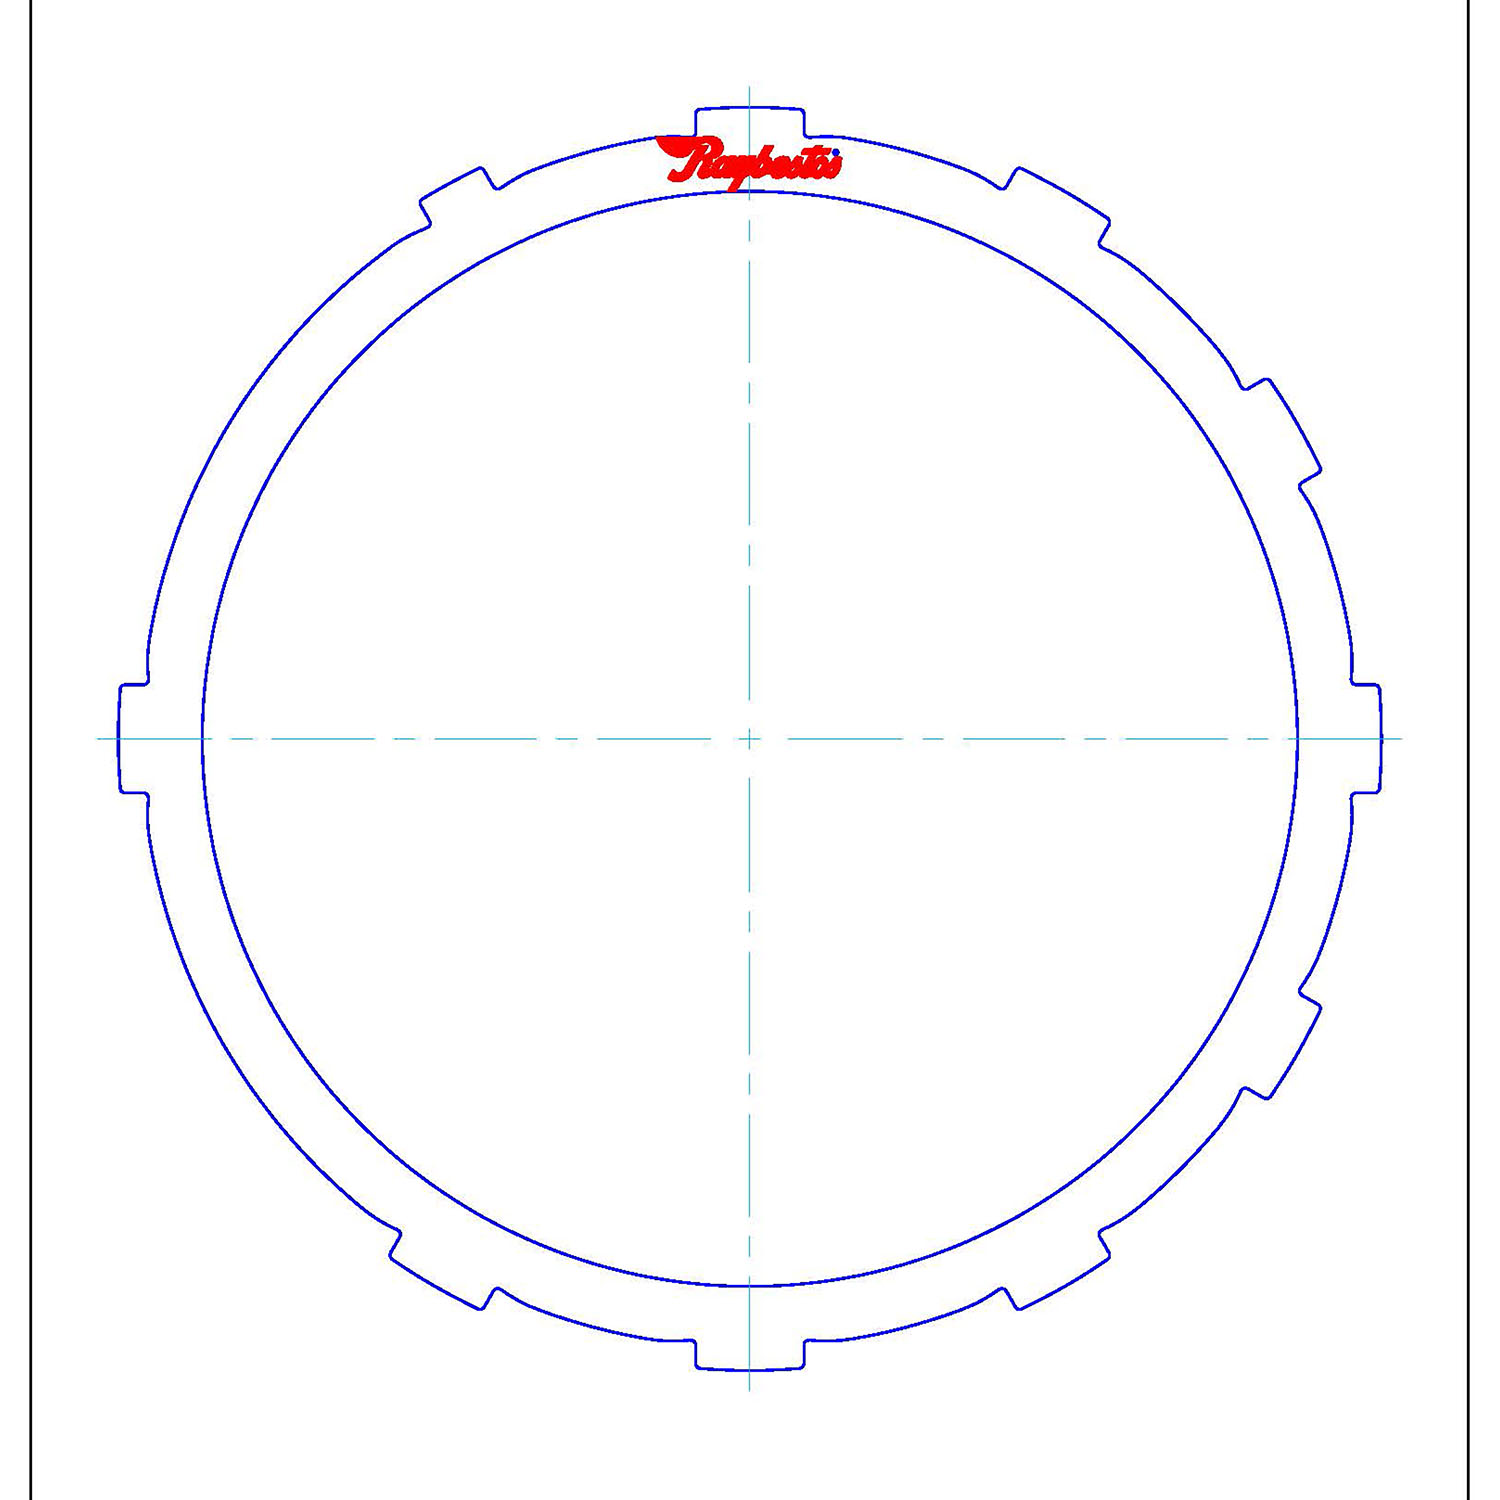 511669 | 2001-ON Steel Clutch Plate Low, Reverse